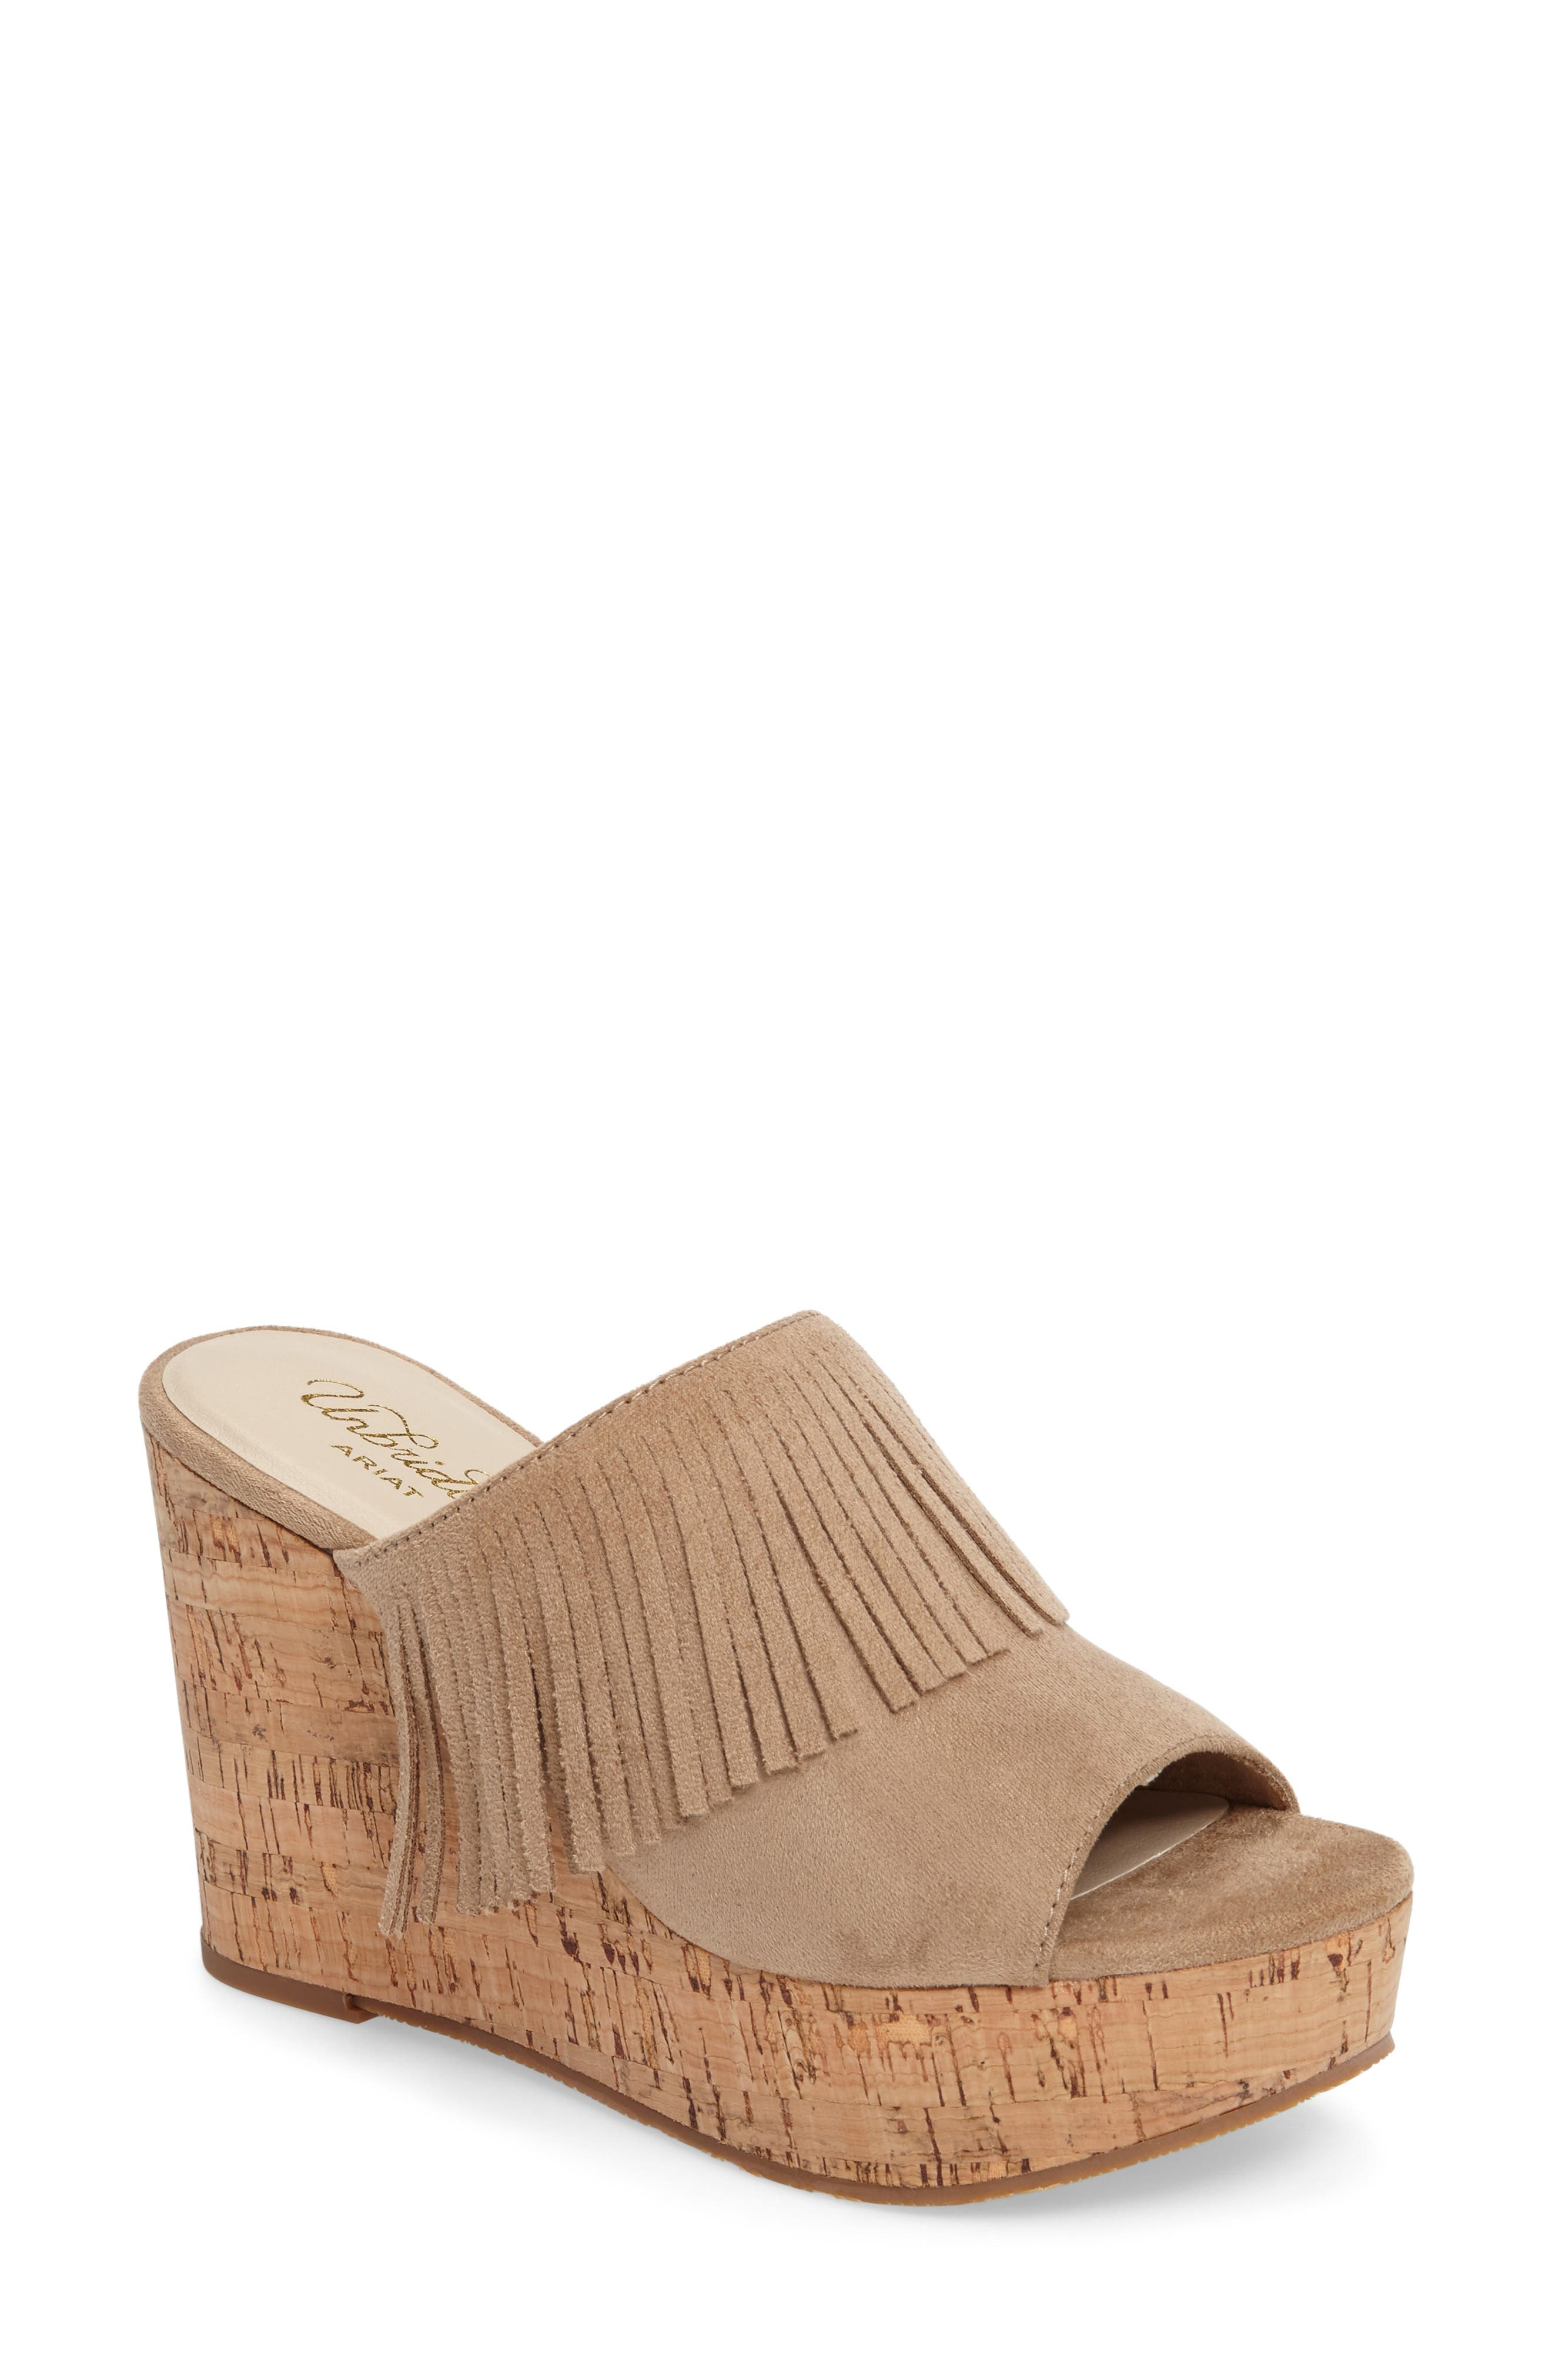 ARIAT Unbridled Leigh Fringe Mule, Main, color, SAND FABRIC